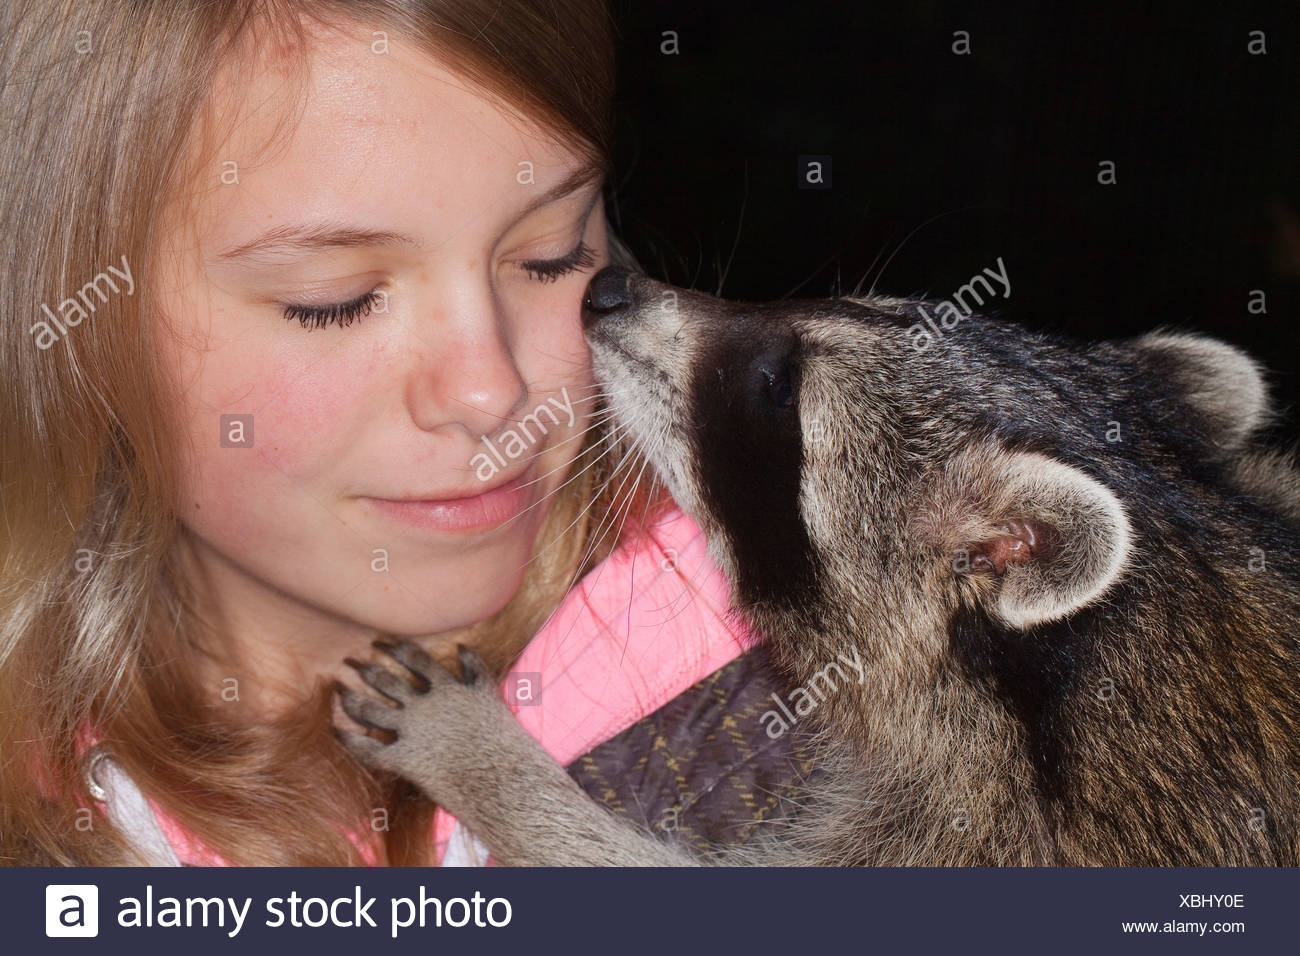 common raccoon (Procyon lotor), gentle young animal playing and smooching with a girl, Germany - Stock Image